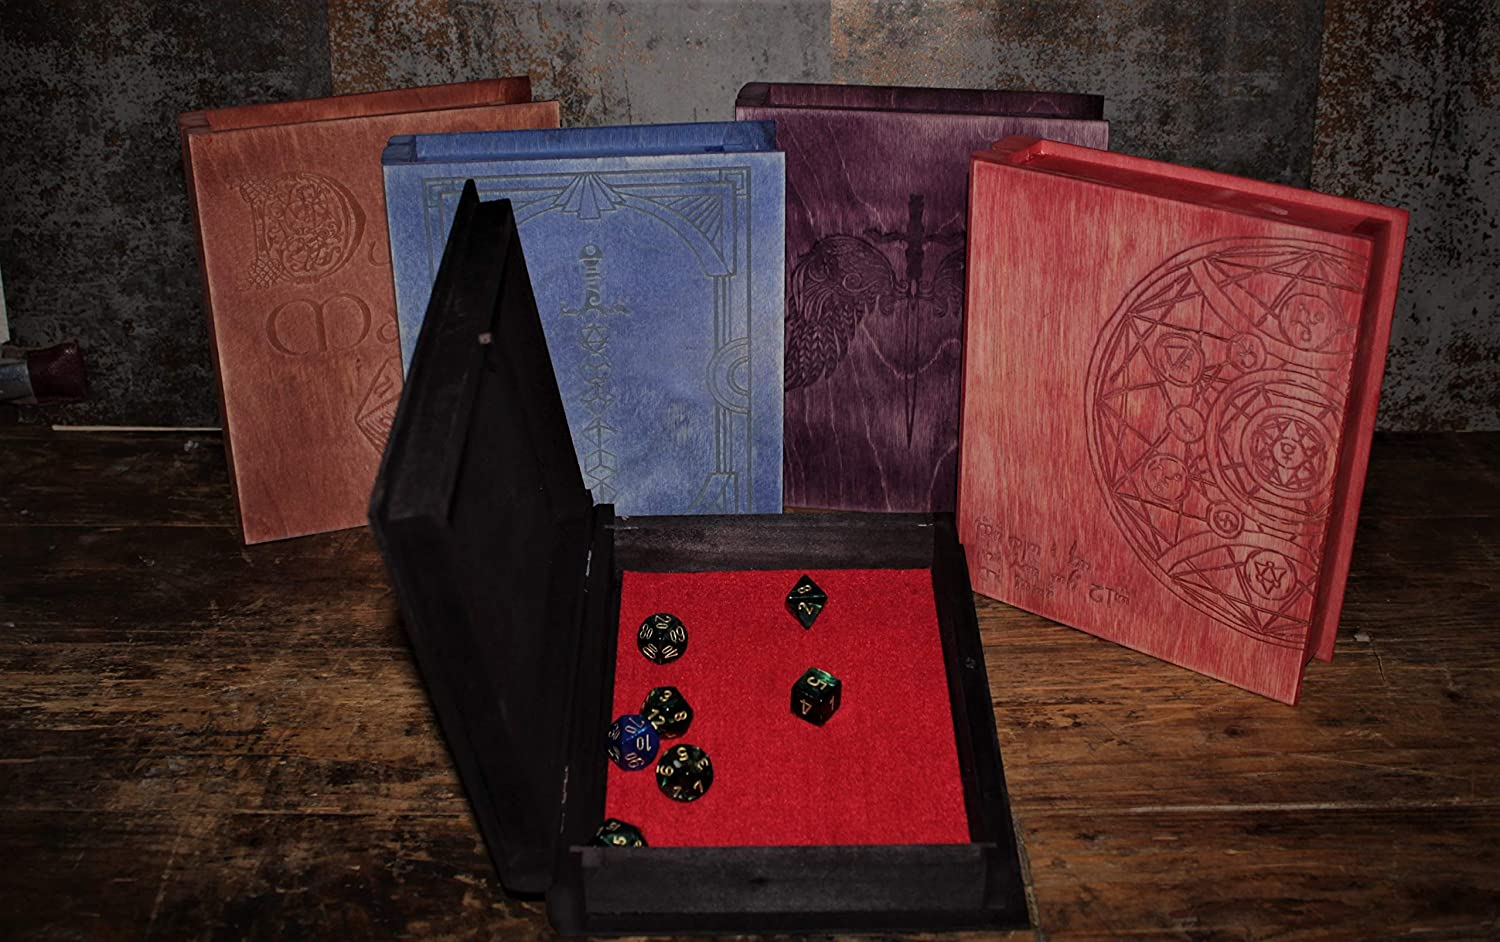 Fandomonium Book Effect Dice Box Tabletop Gaming DND Storage Box Choice of Colours And Designs Dice Tray Dungeons and Dragons Red, Book Of Alchemy RPG